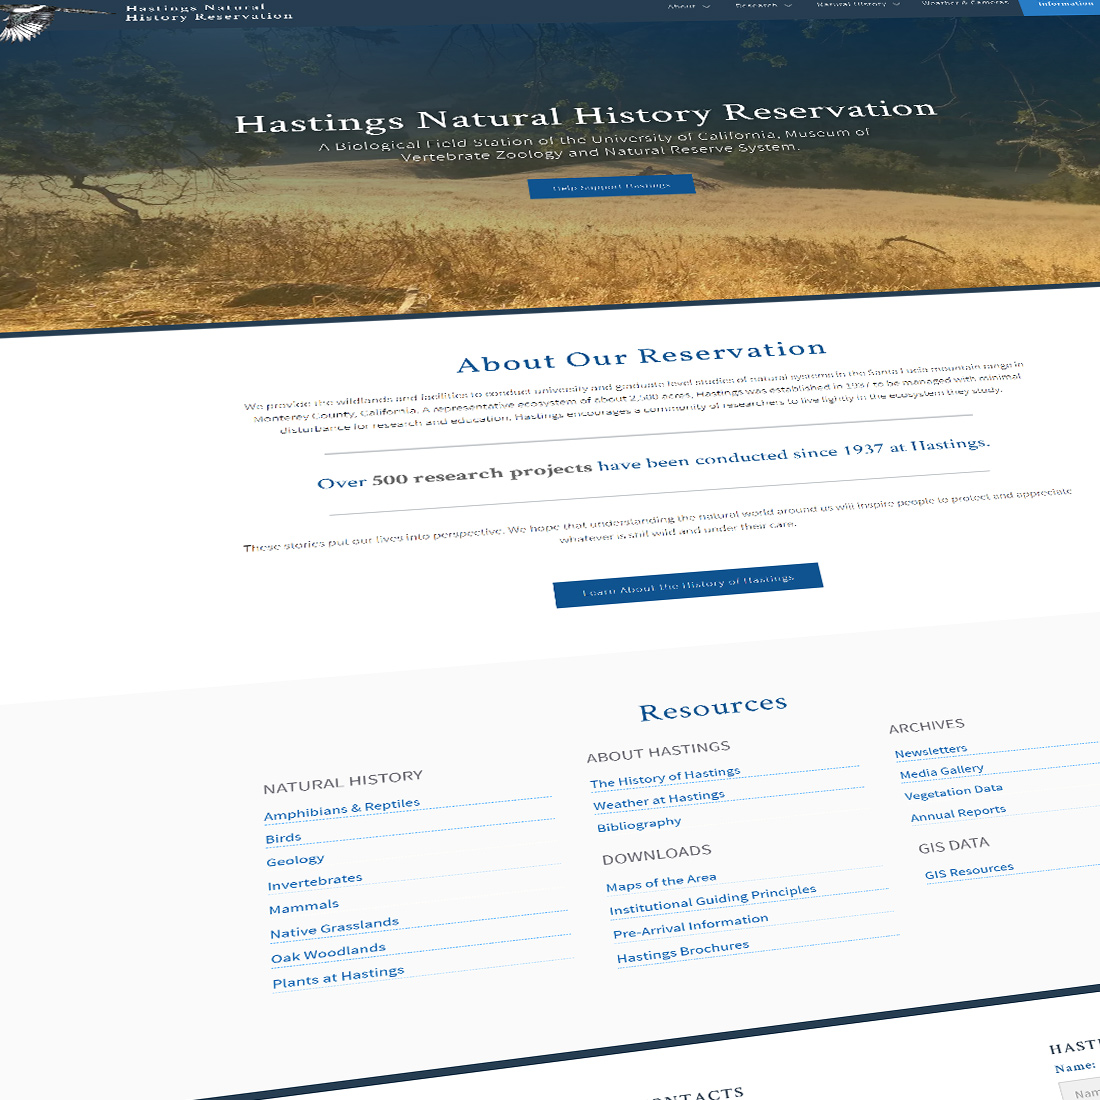 Hastings Natural History Reservation Website